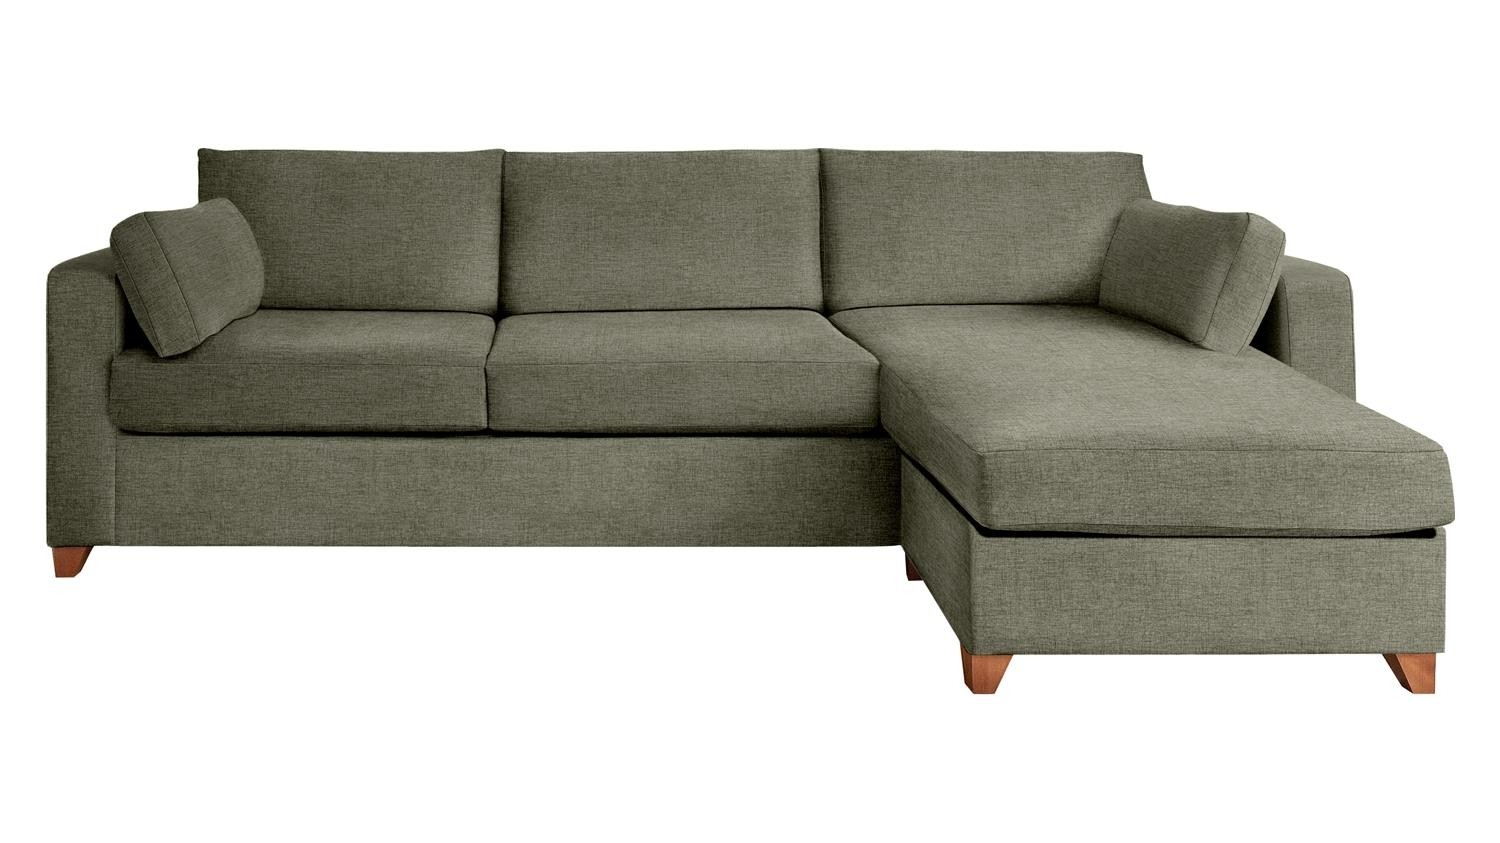 The Ashwell 4 Seater Right Chaise Storage Sofa